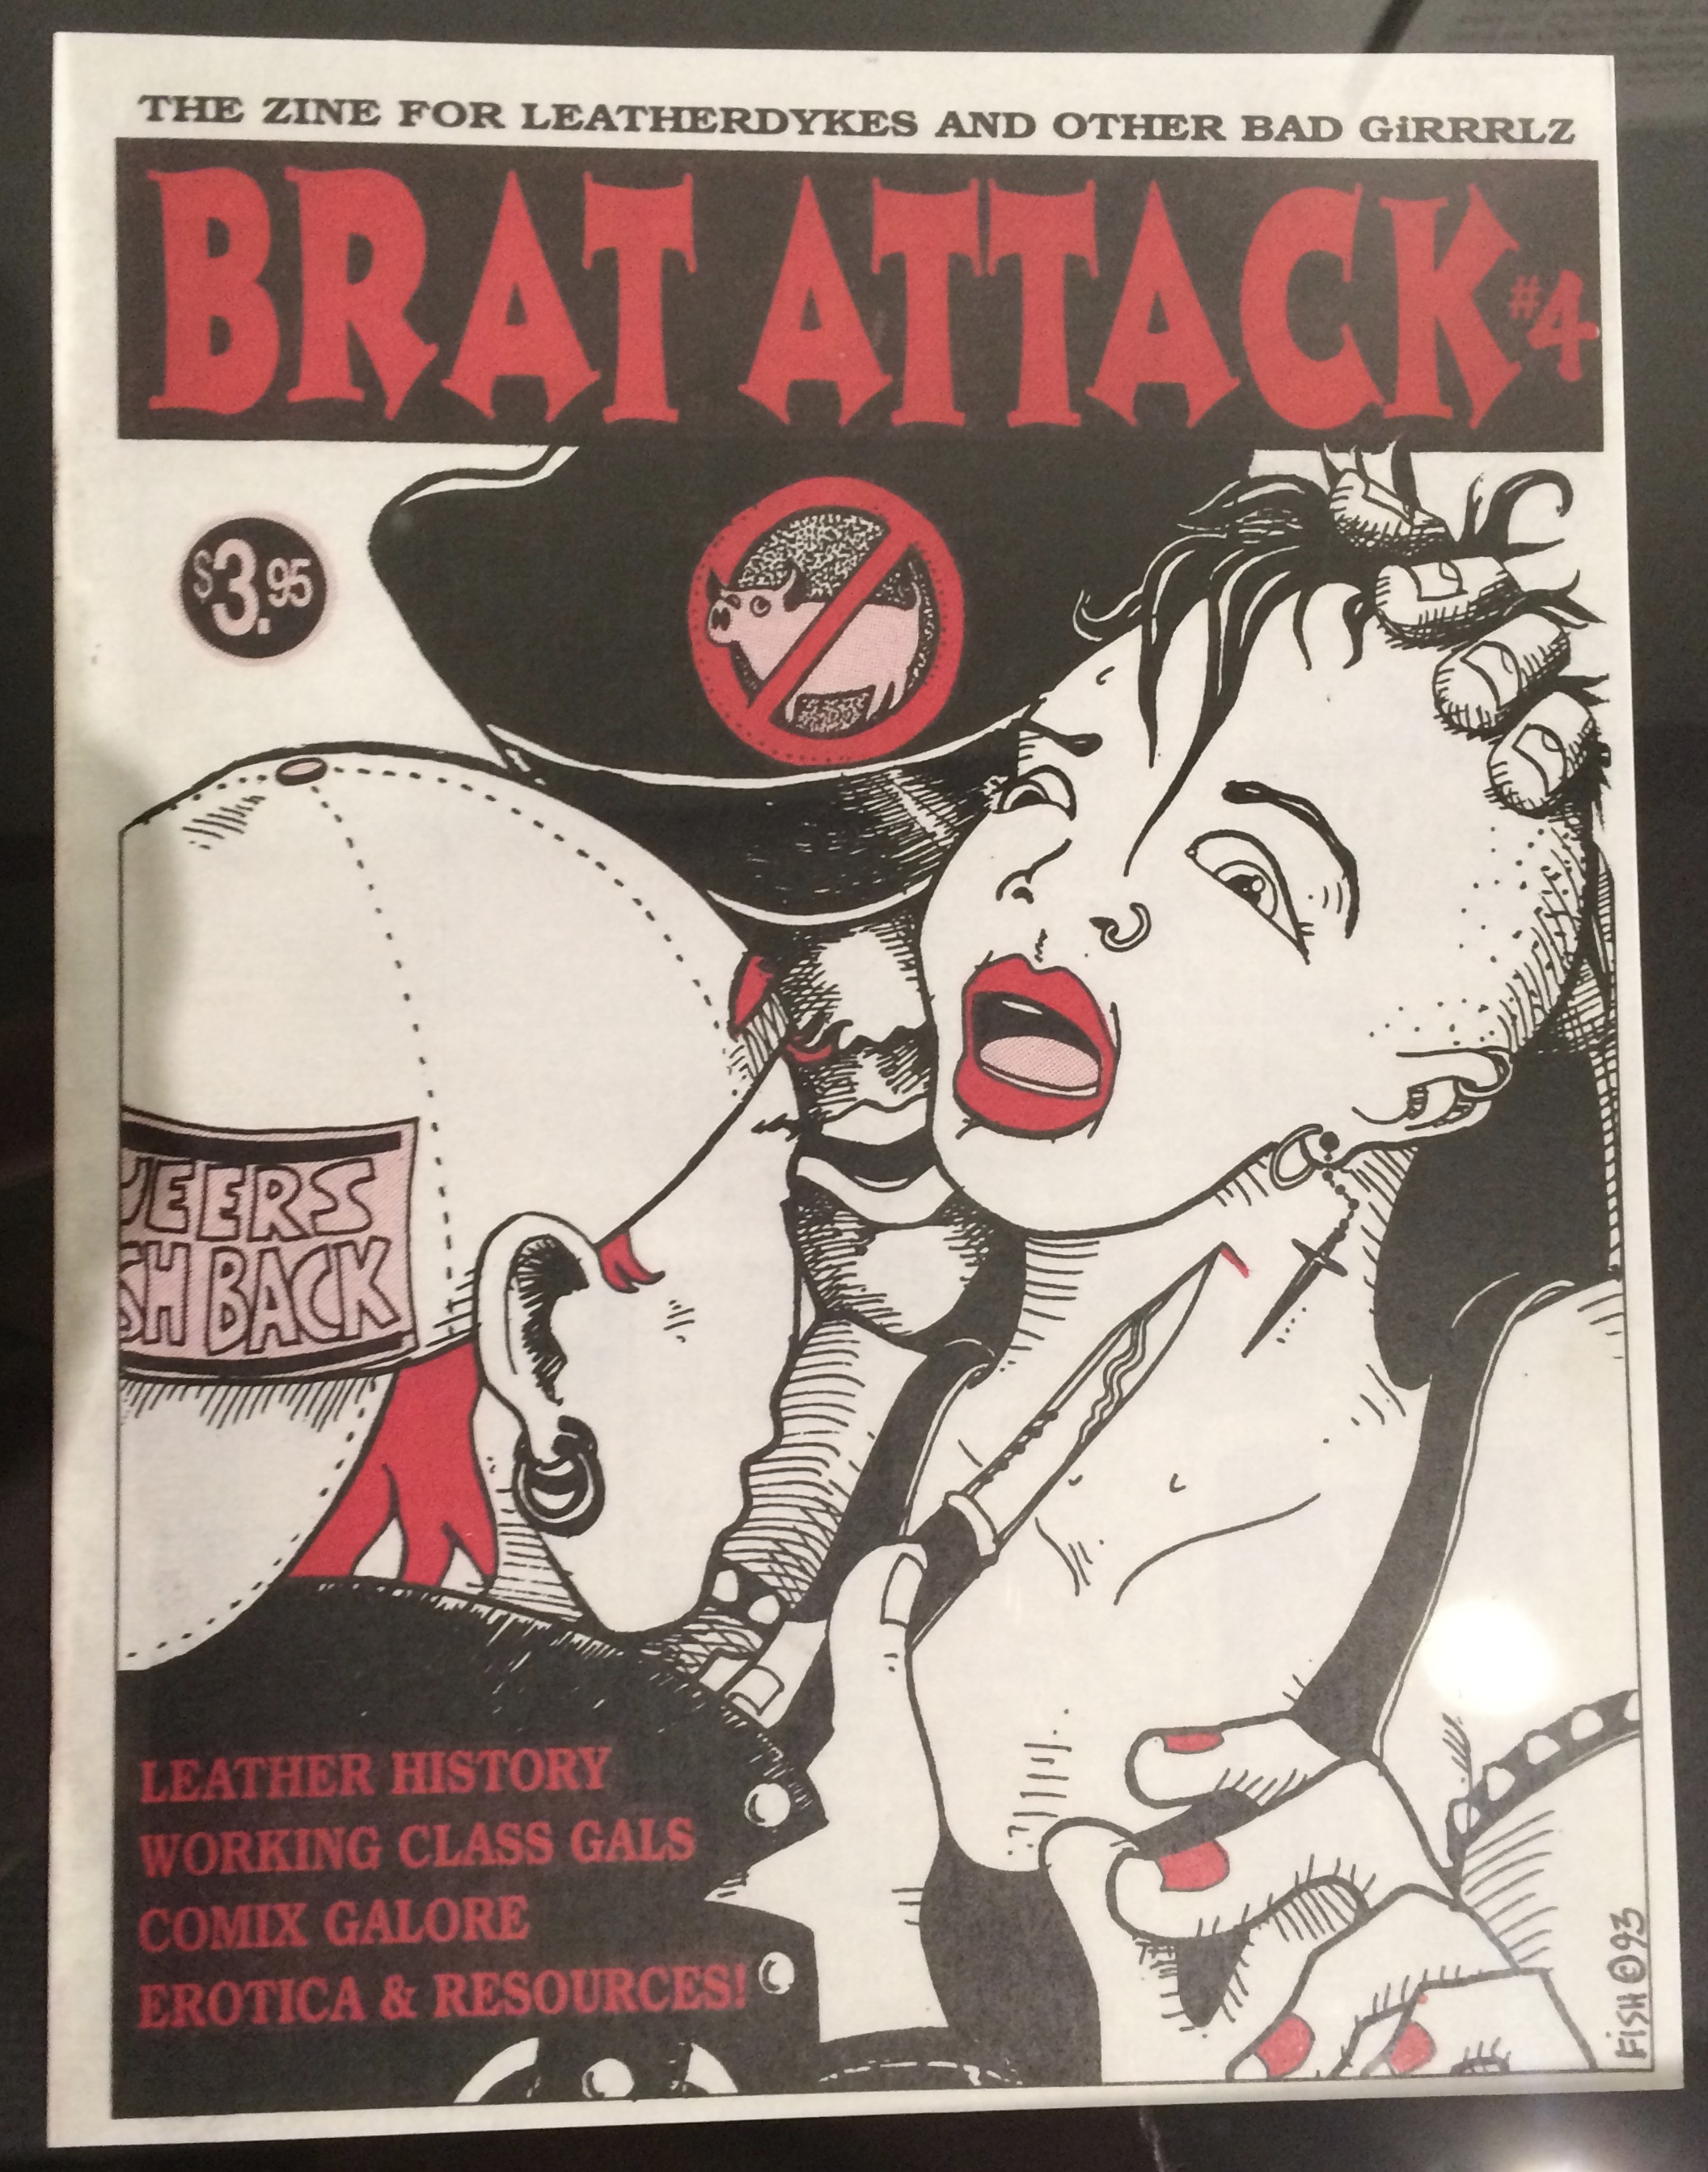 """Brat Attack is a short-lived """"leathergirl"""" zine that reflects the importance of pocket zines, mags, and posters to connect the leather community. These publications are often marked by violent imagery, hyperbolized figures, bright color contrasts, and a strong influence from the cartoon world."""